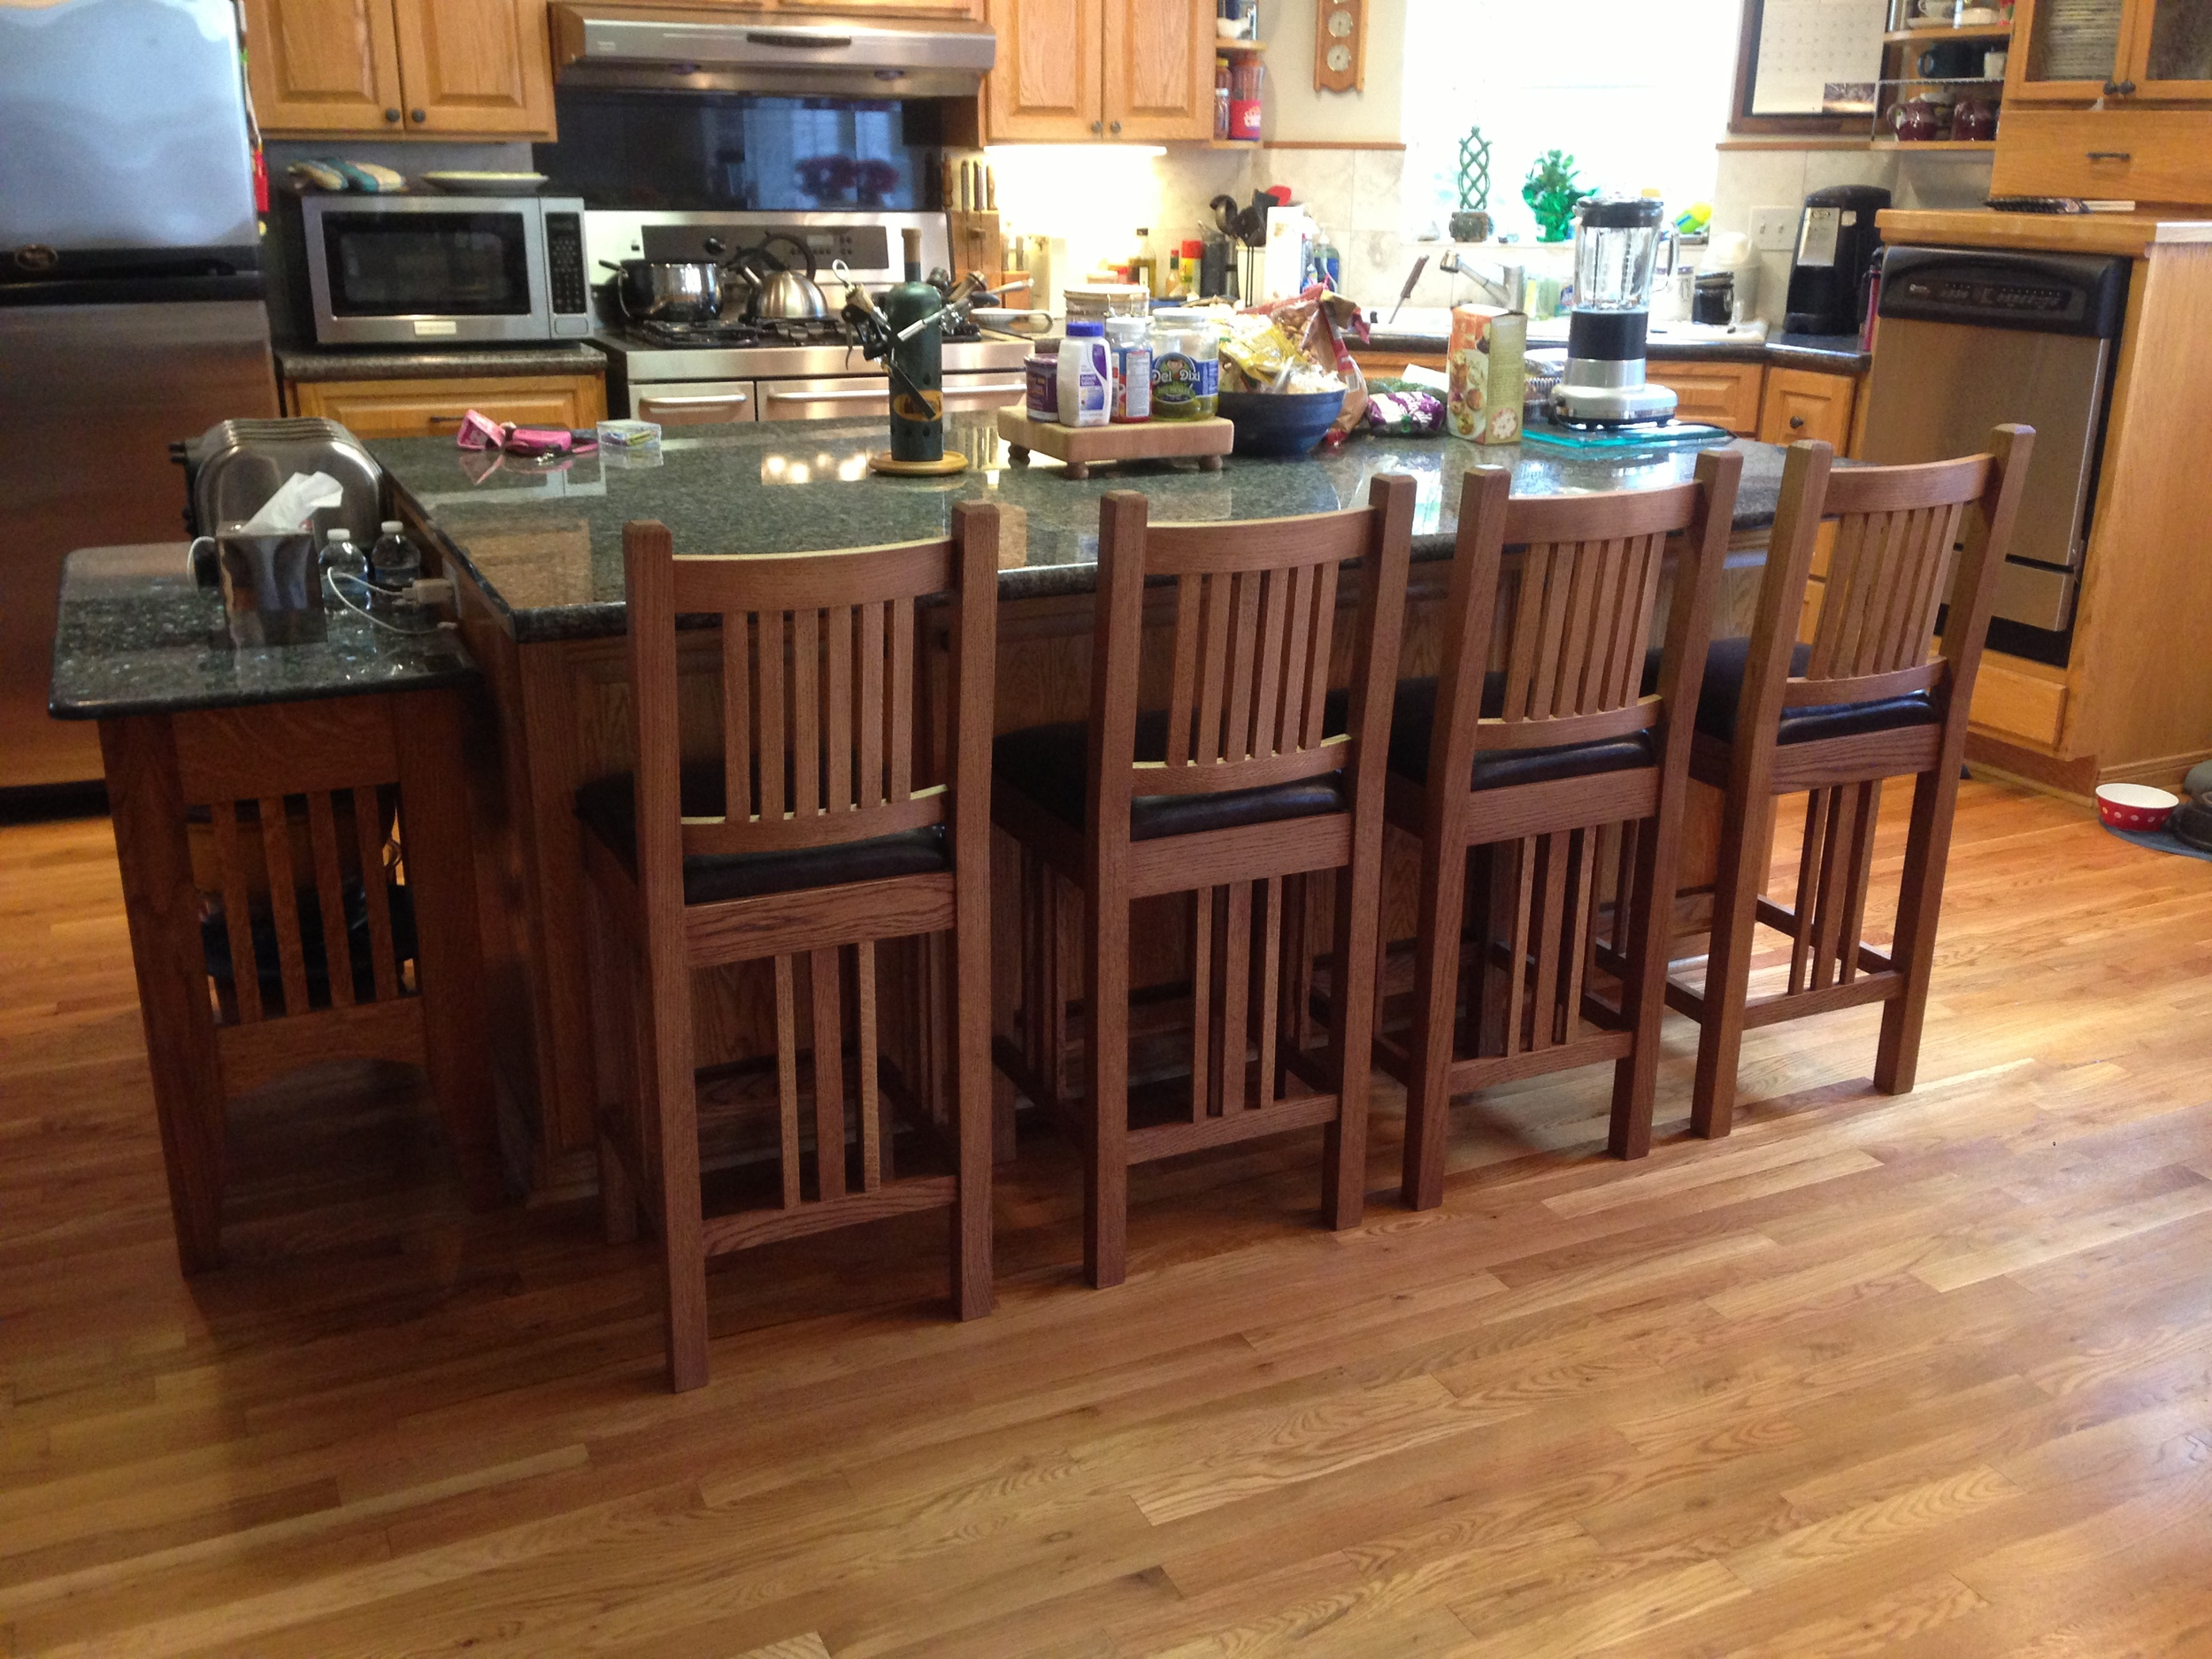 Mission Bar Stools - Click photo to see design and build in the shop.